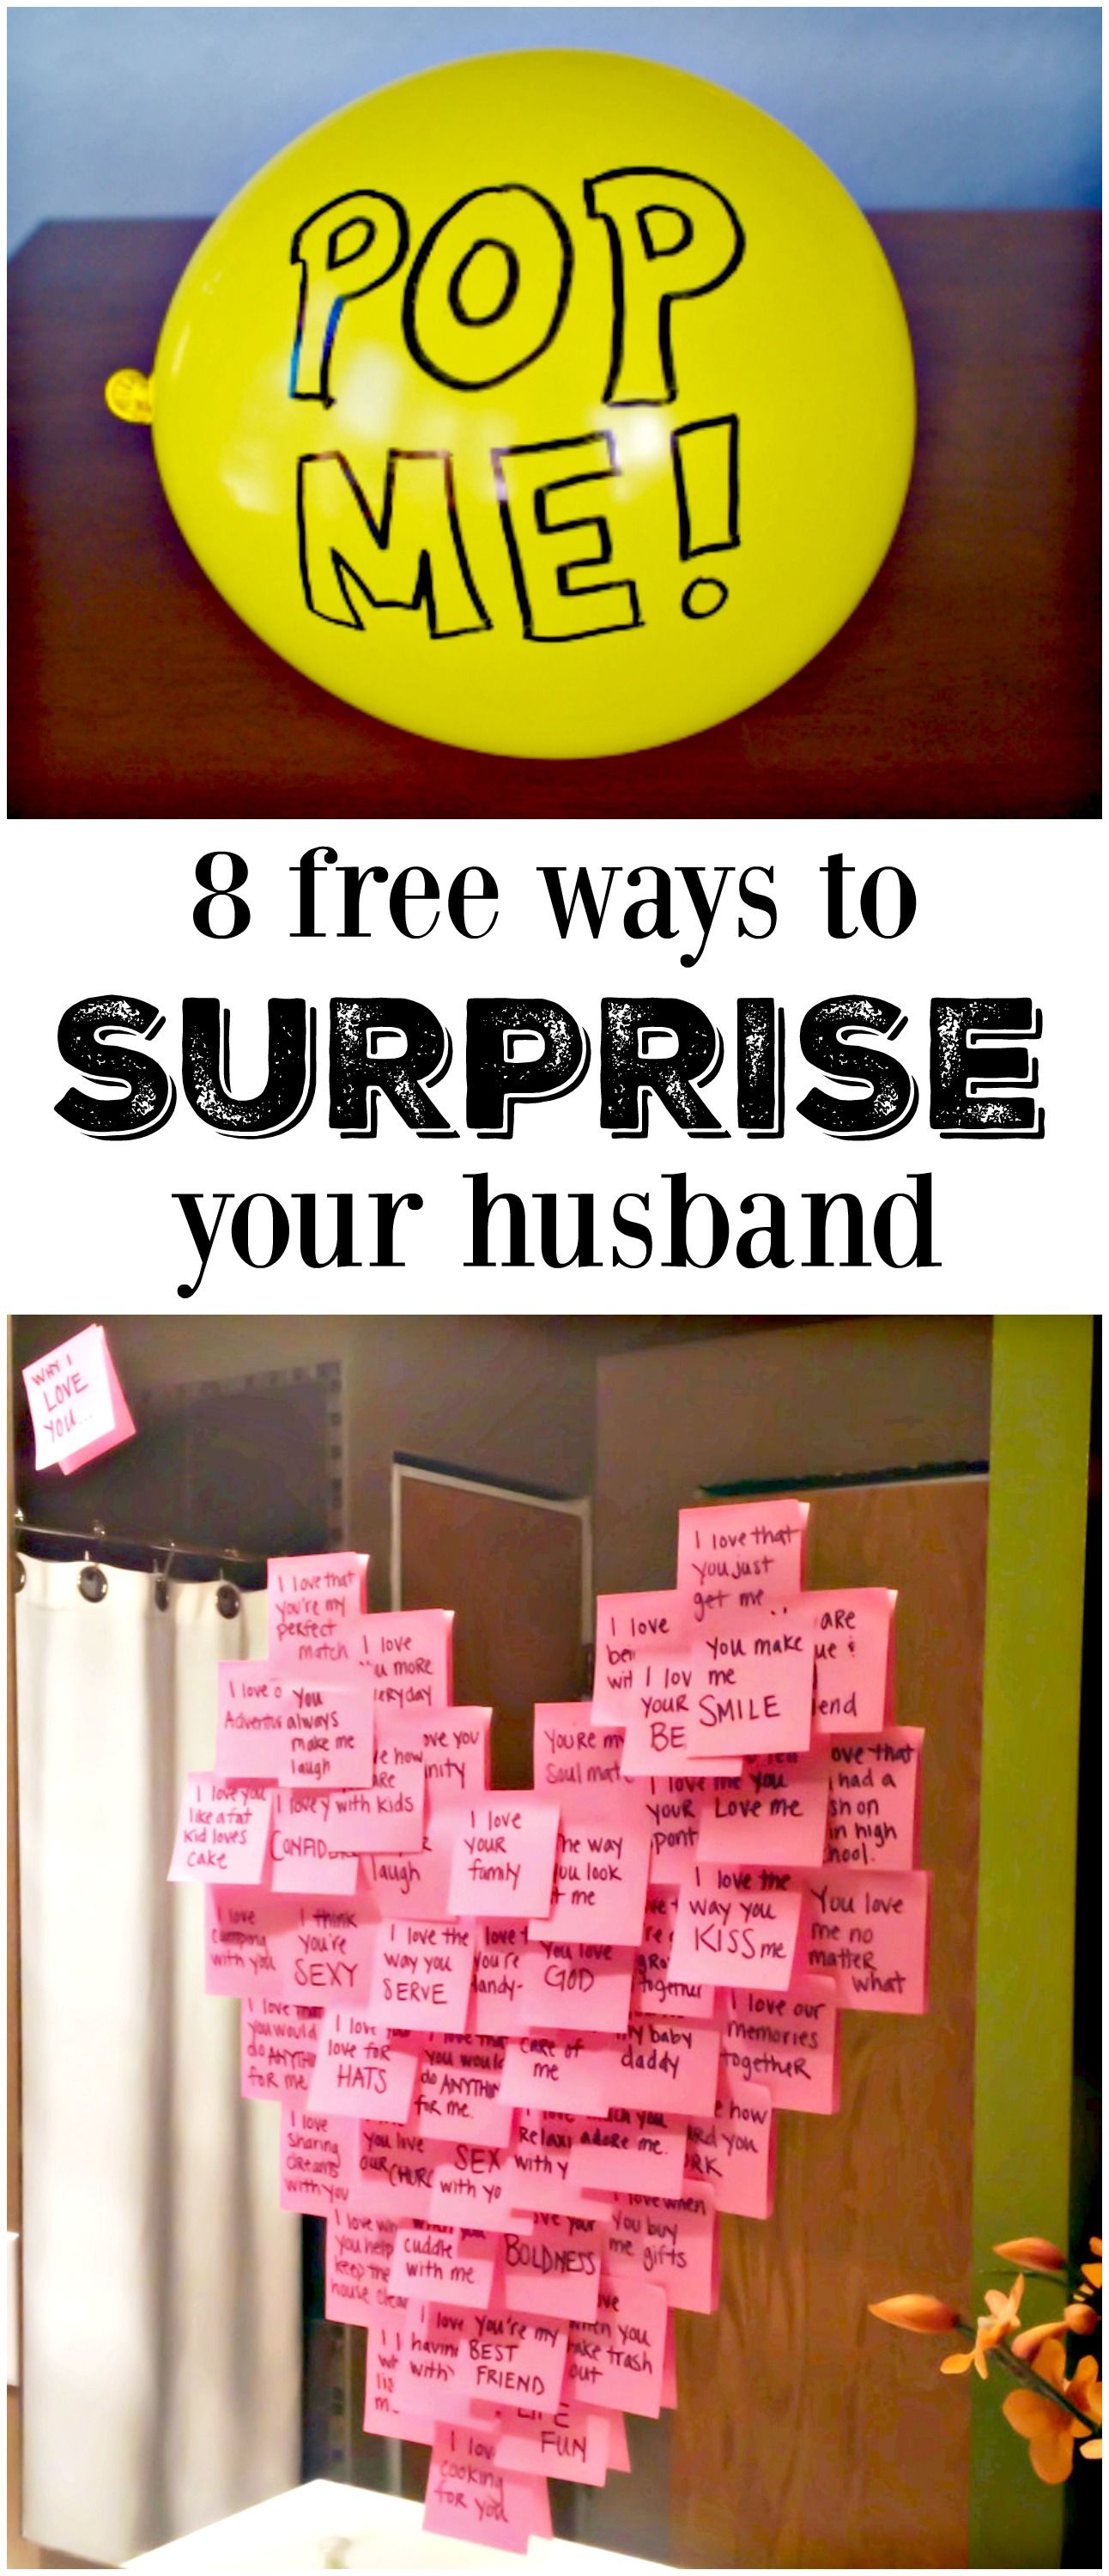 8 Meaningful Ways to Make His Day Free, Gift and